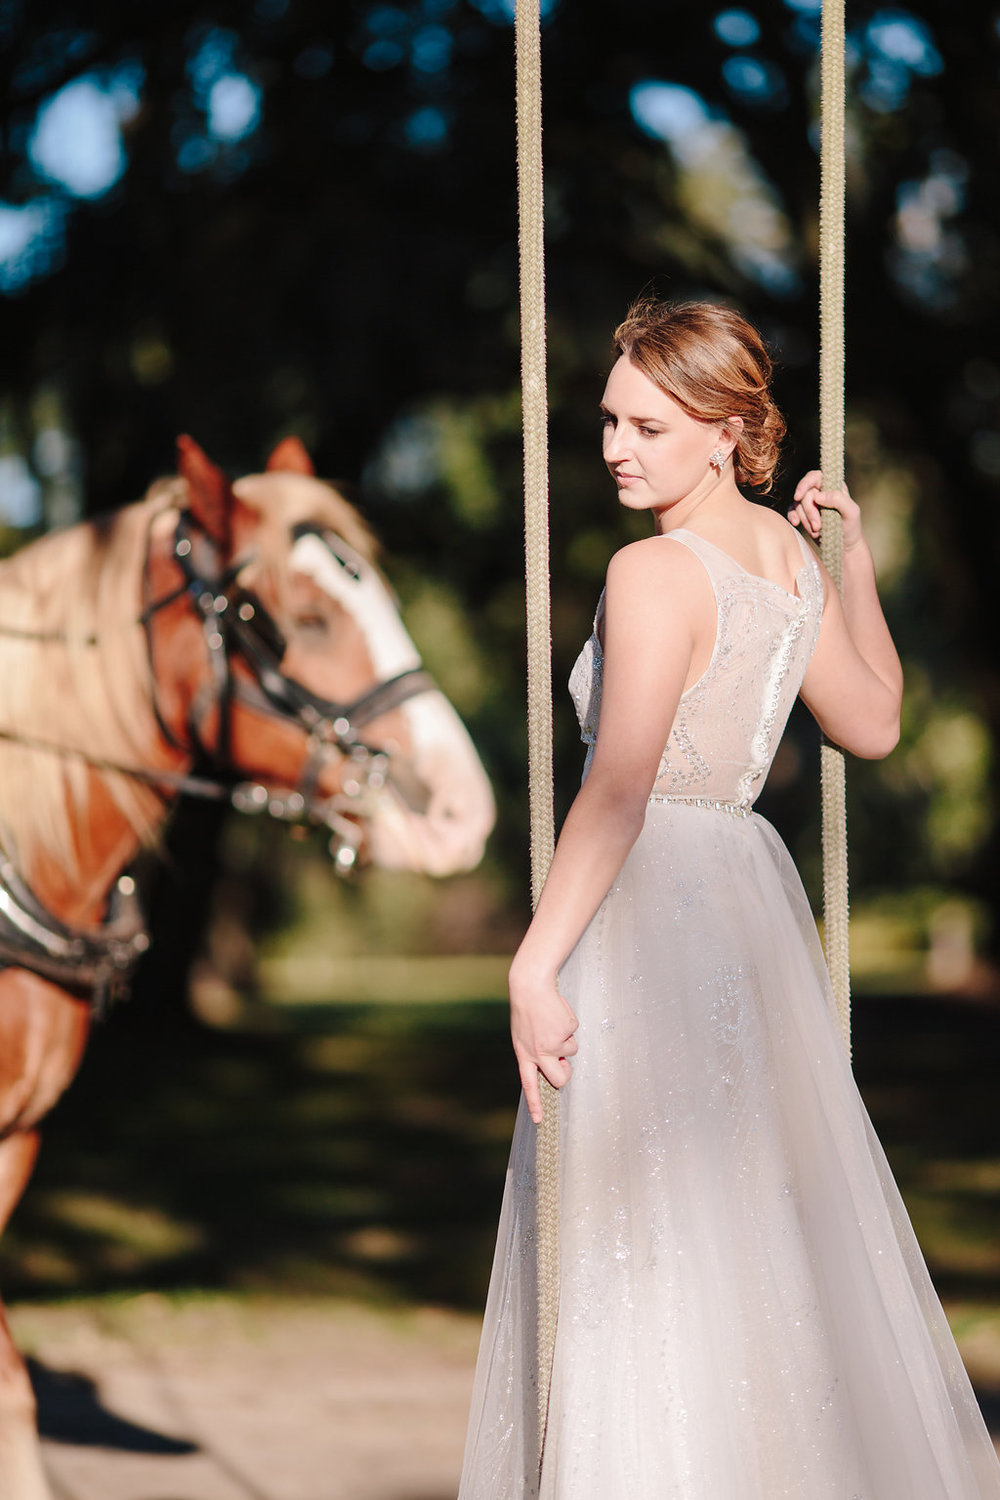 Bride on a swing at Sugah Cain Plantation with horse  Bride and her maids at Sugah Cain Plantation in front of white horse and Carriage  //  on A Lowocountry Wedding Magazine & Blog